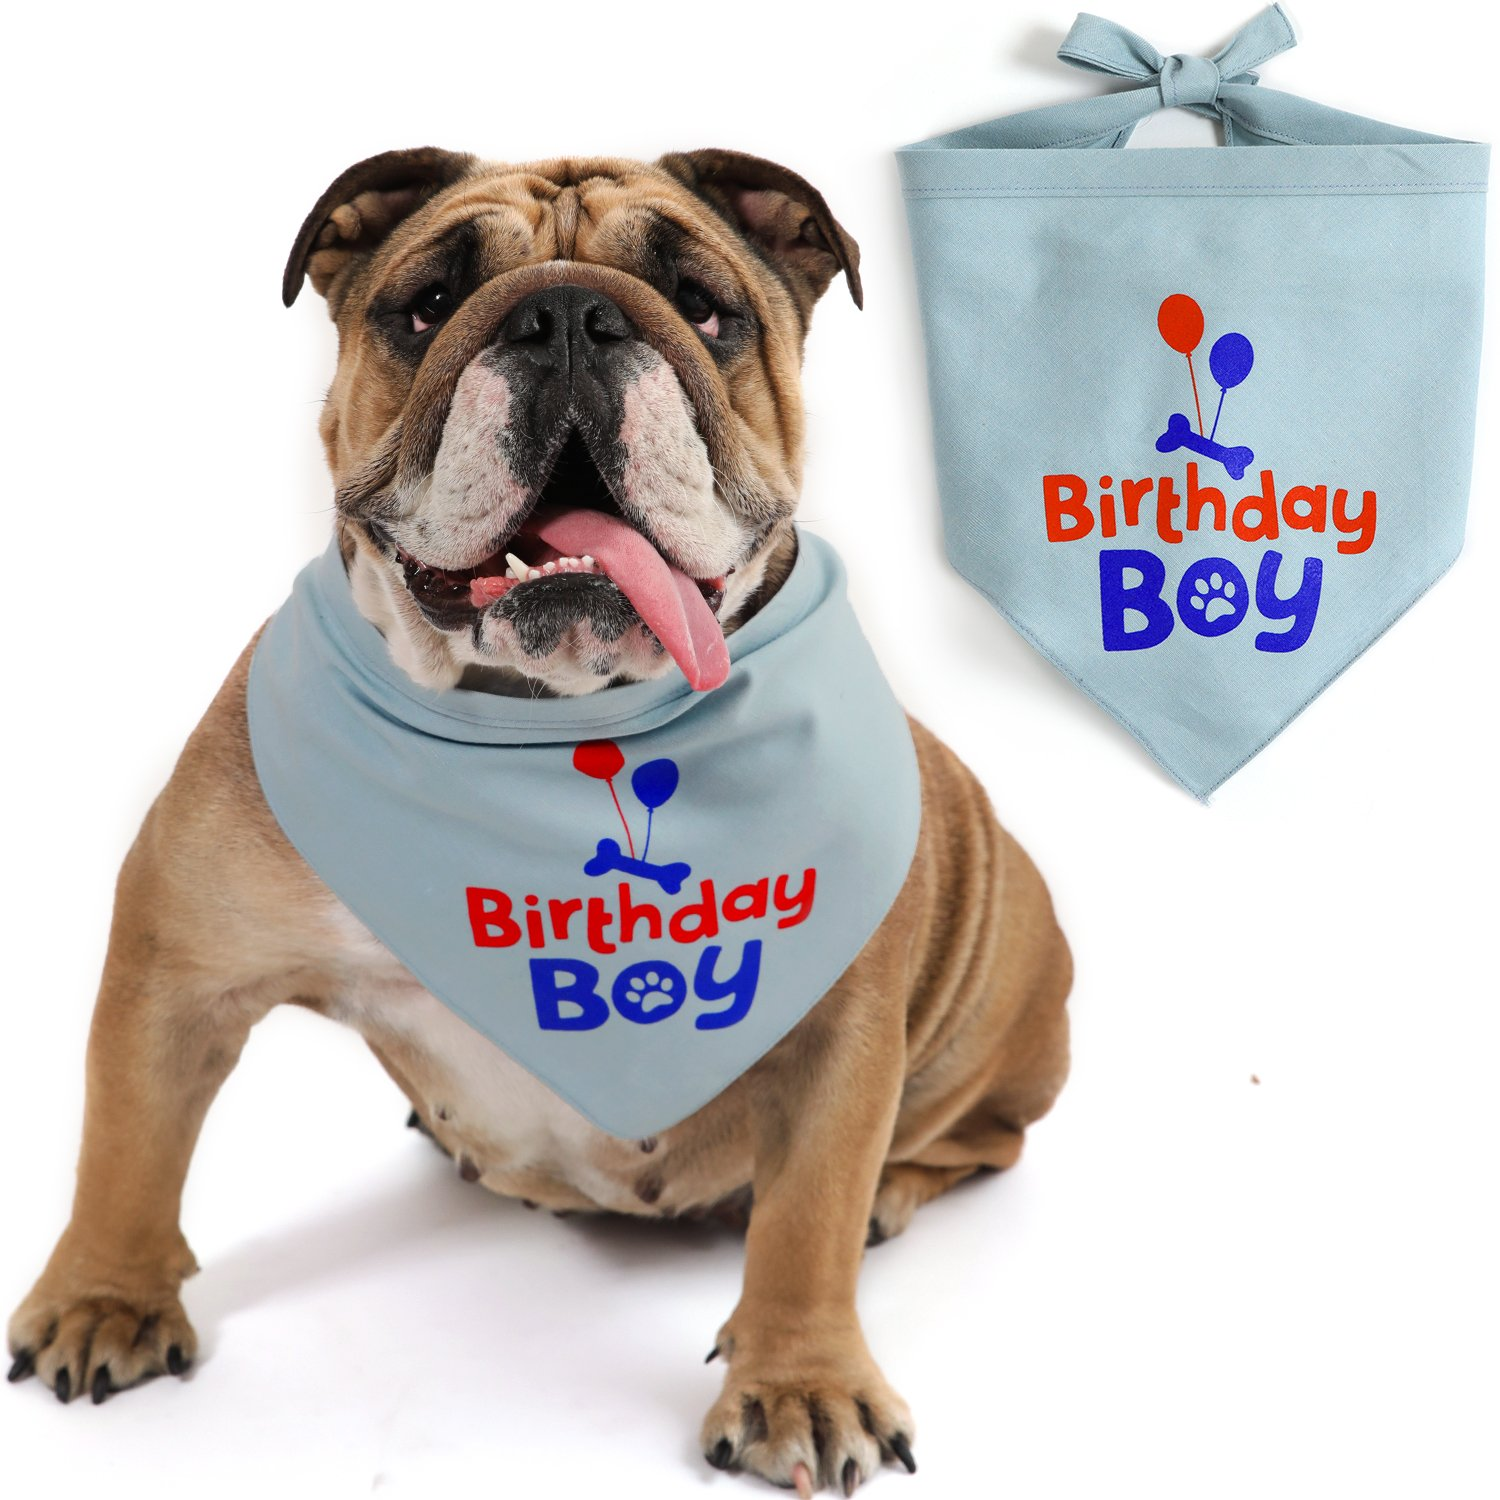 JOYLOADER Dog Birthday Bandana Boy - Dog Birthday Party Supplies - Birthday Boy Dog Bandana - Ideal Birthday Gift Idea for Pet